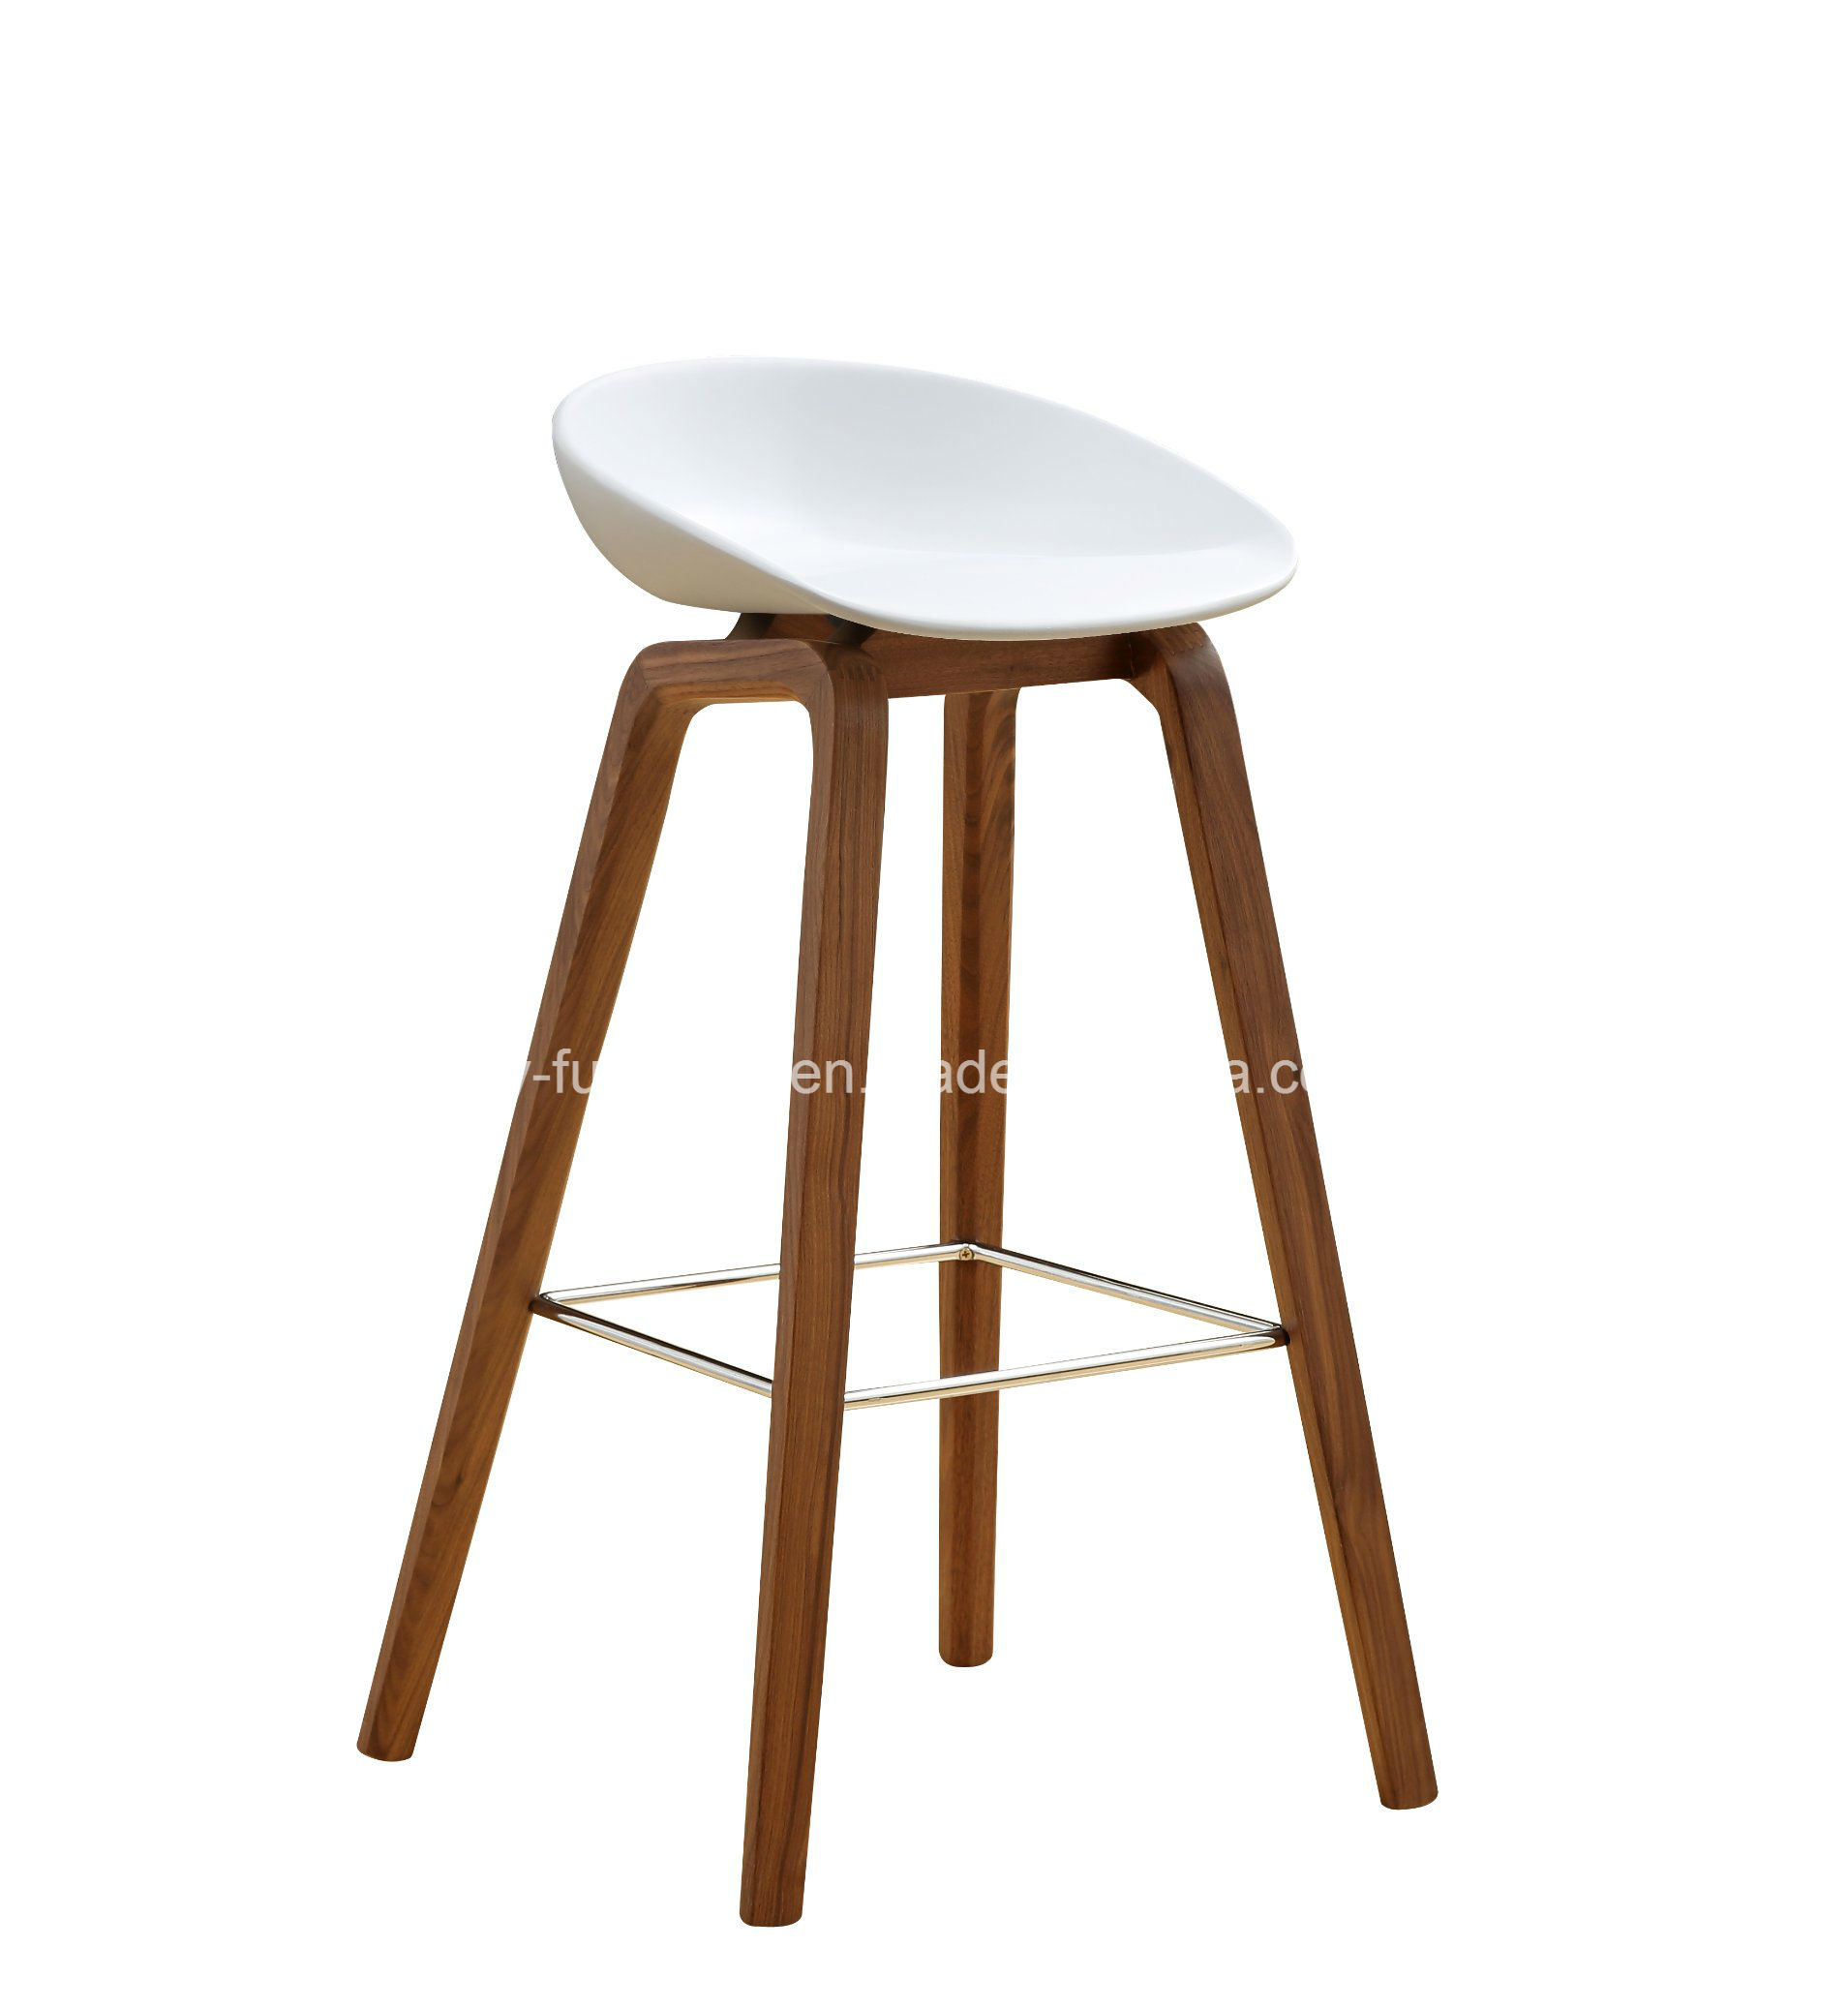 China Hay Chair Plastic Seattop Wooden Bar Stool China Lounge